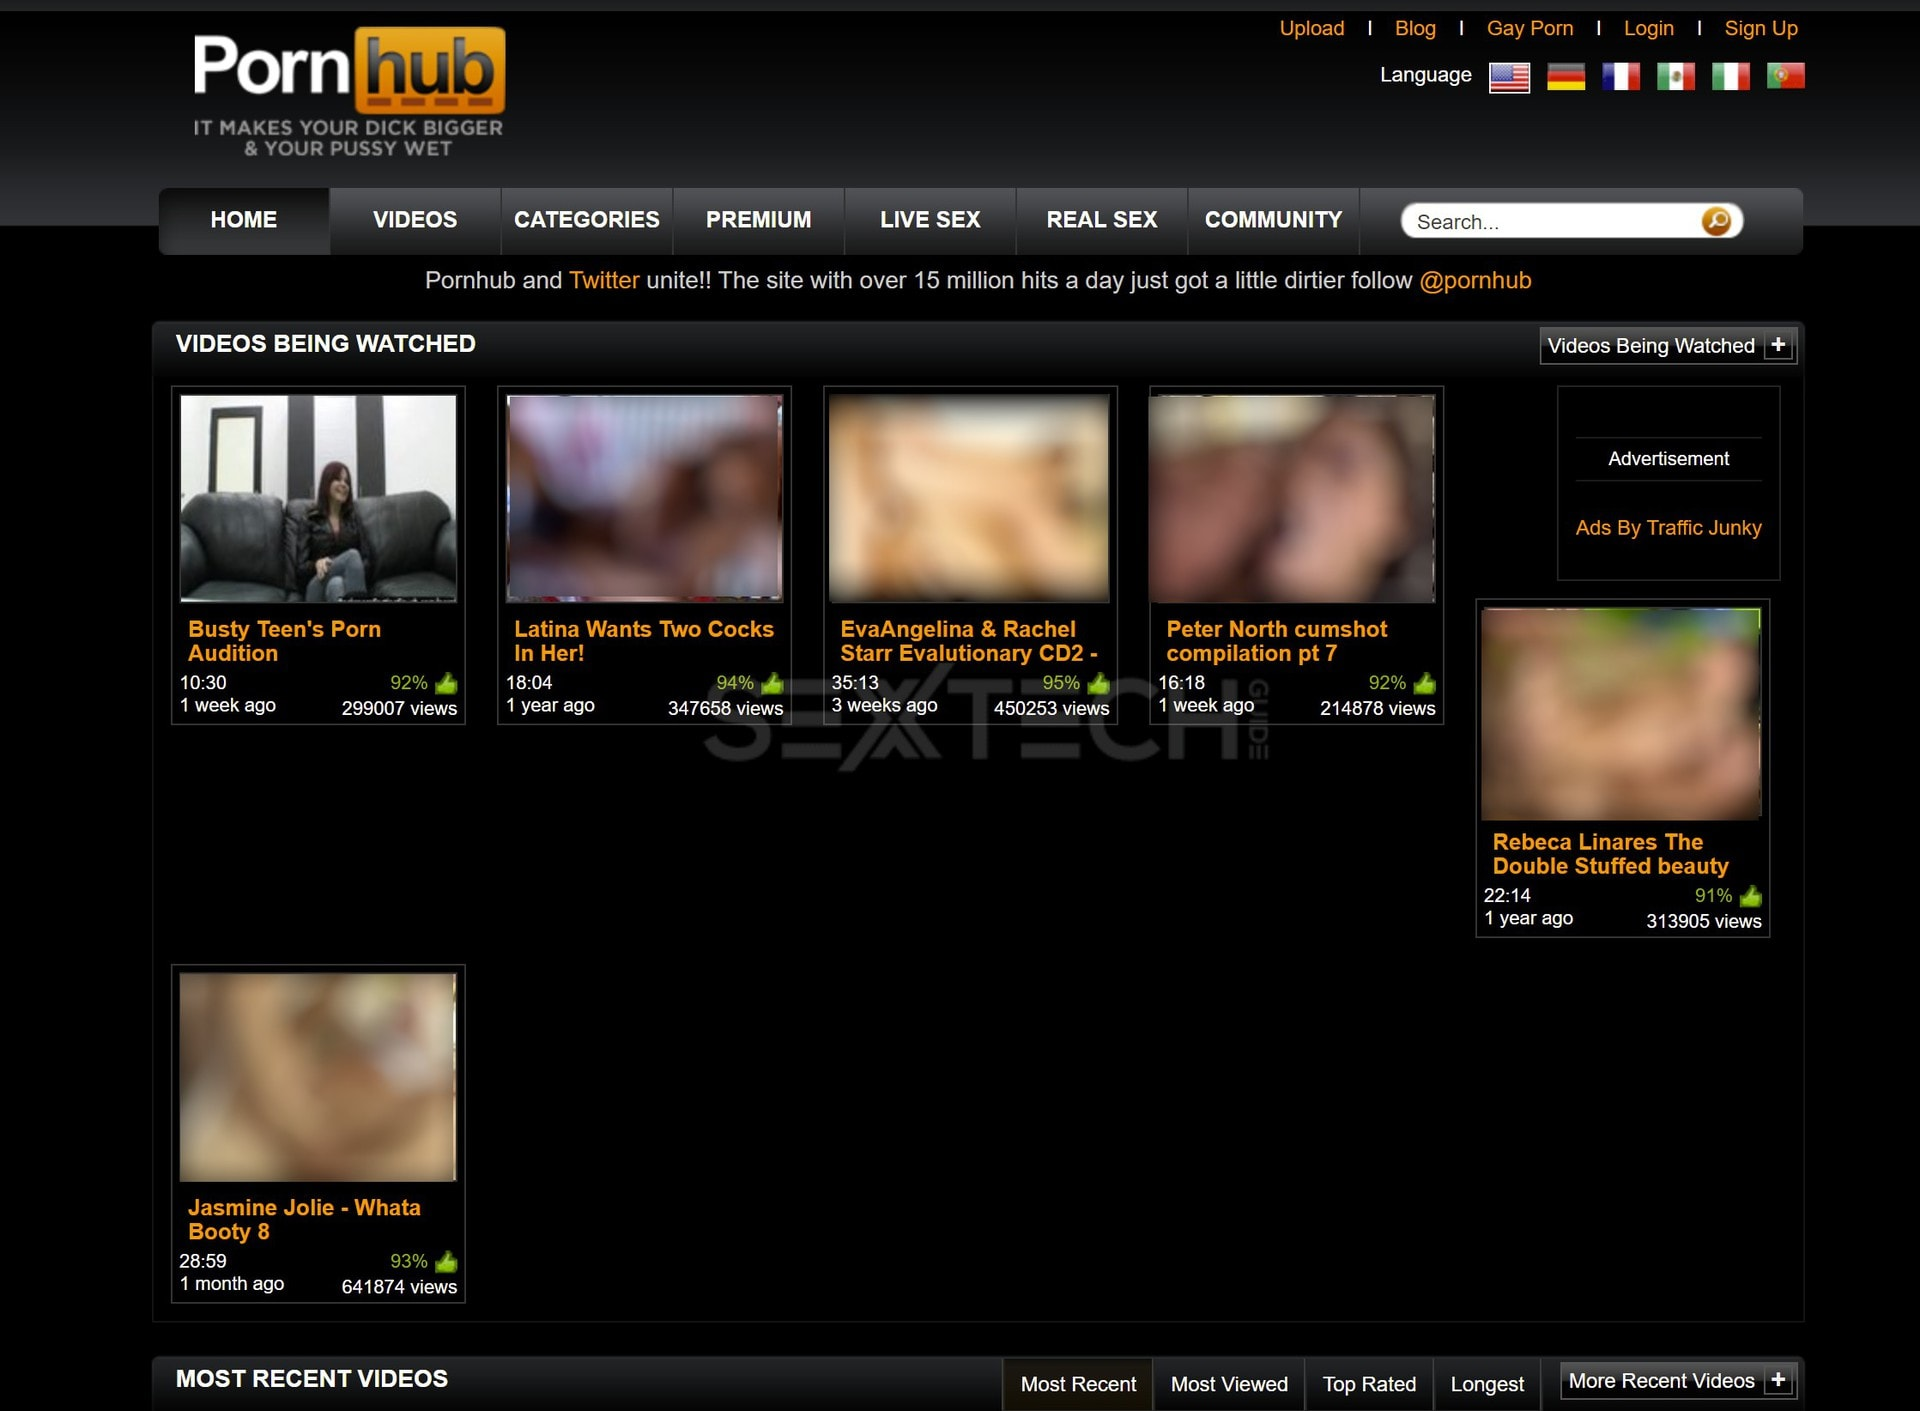 Pornhub has largely looked the same since around 2010